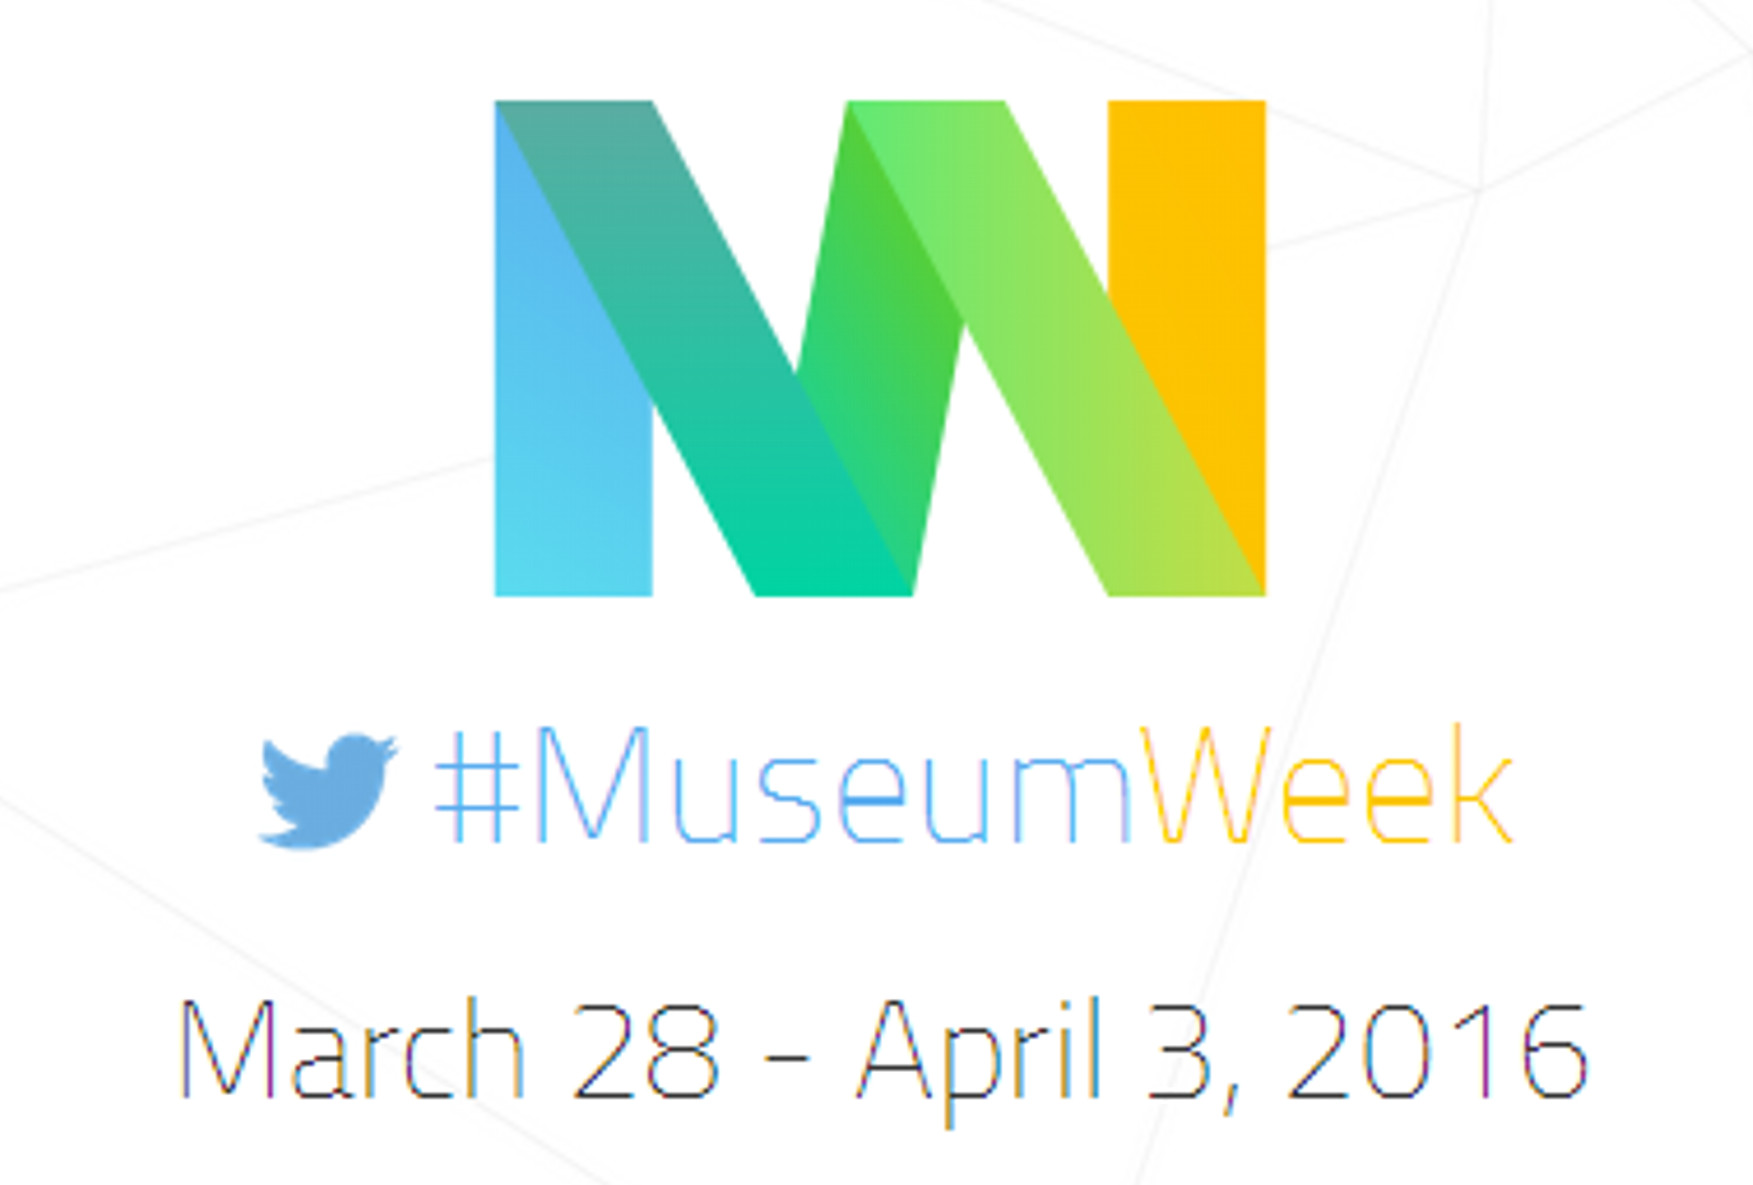 #MuseumWeek – 28 March to 3 April 2016